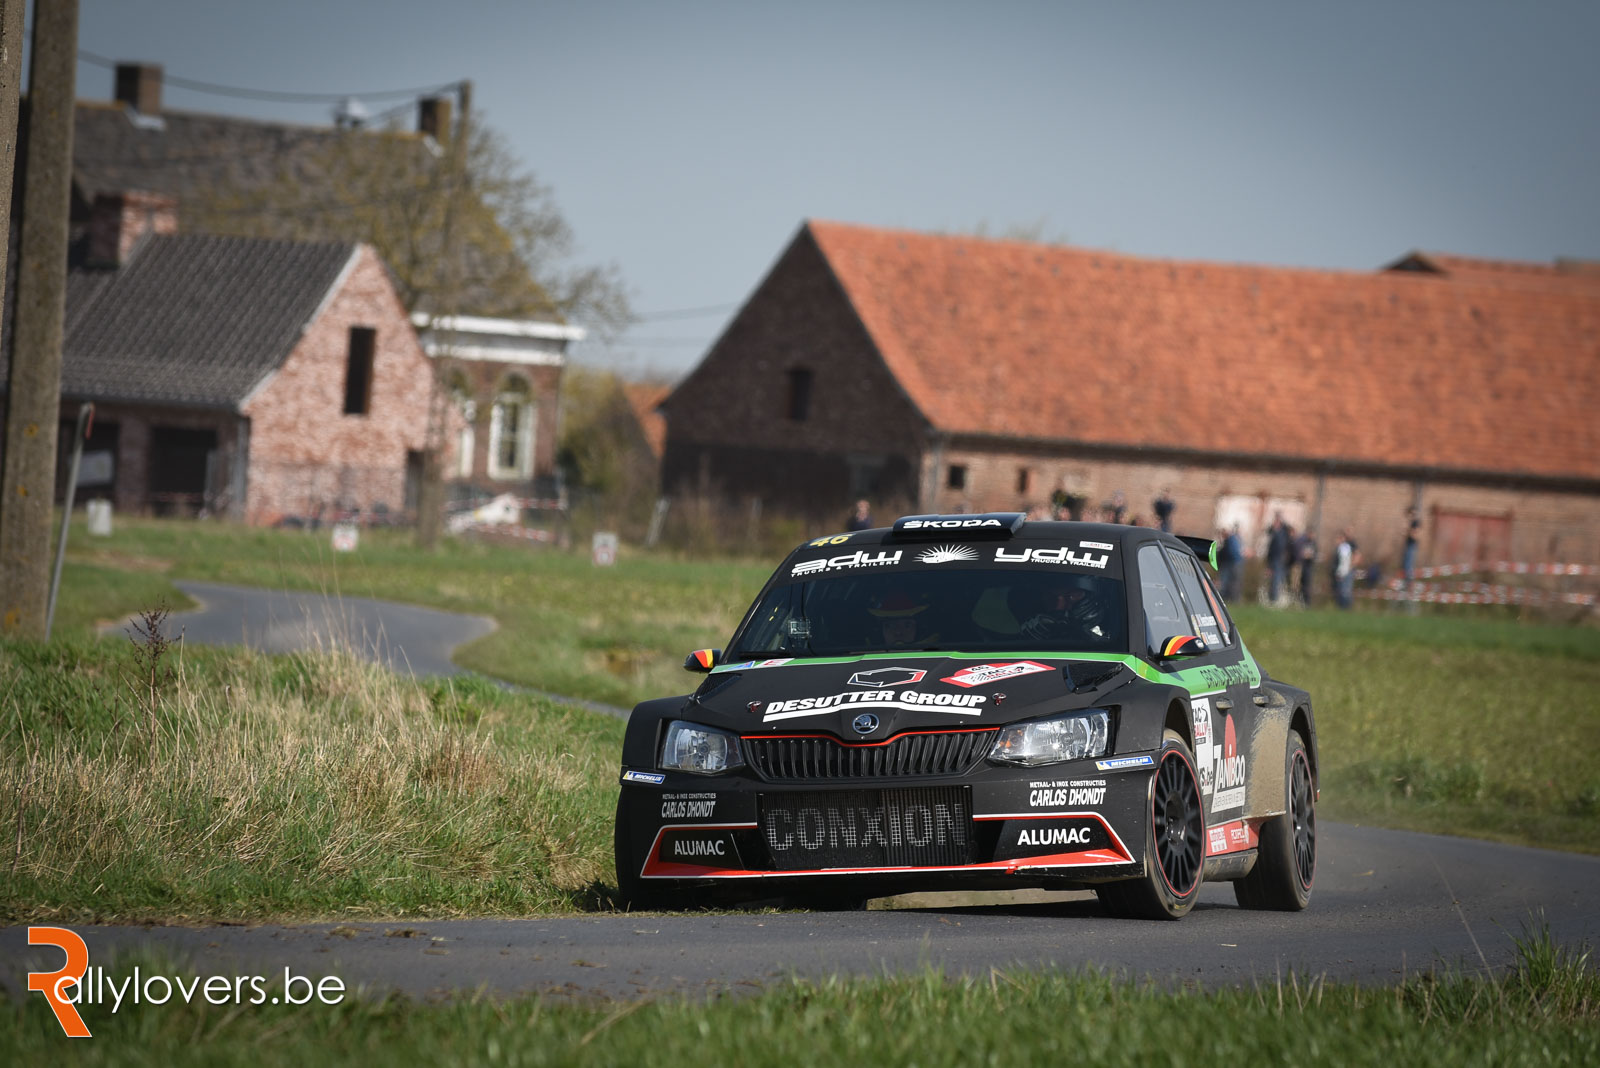 Preview - Rallye de Wallonie - Vincent Verschueren`